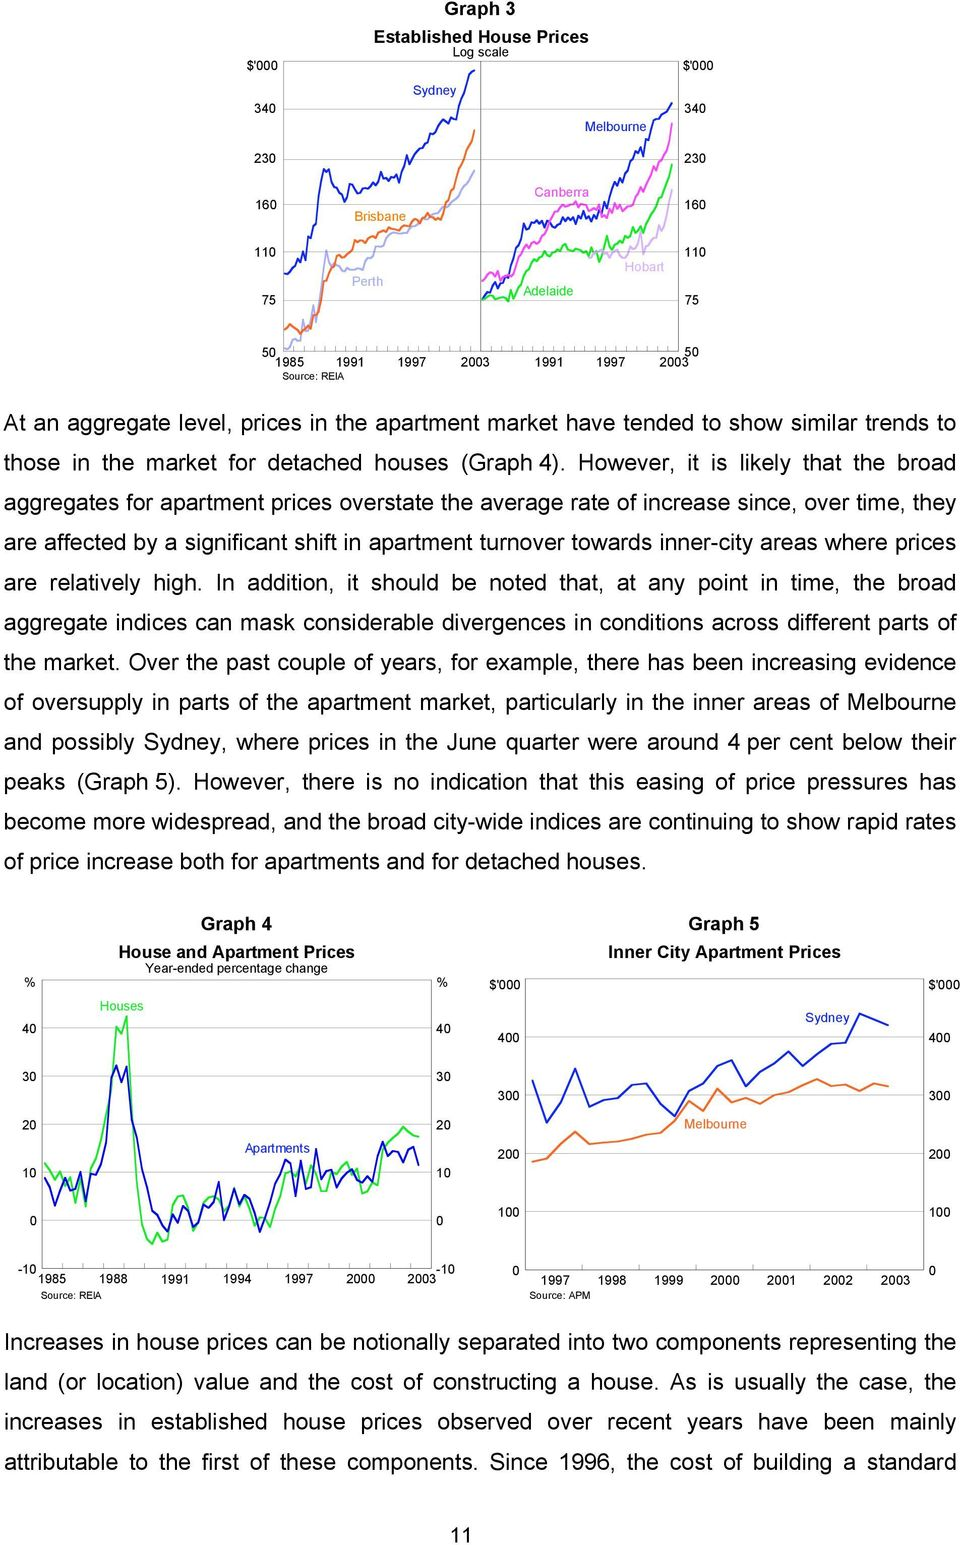 However, it is likely that the broad aggregates for apartment prices overstate the average rate of increase since, over time, they are affected by a significant shift in apartment turnover towards